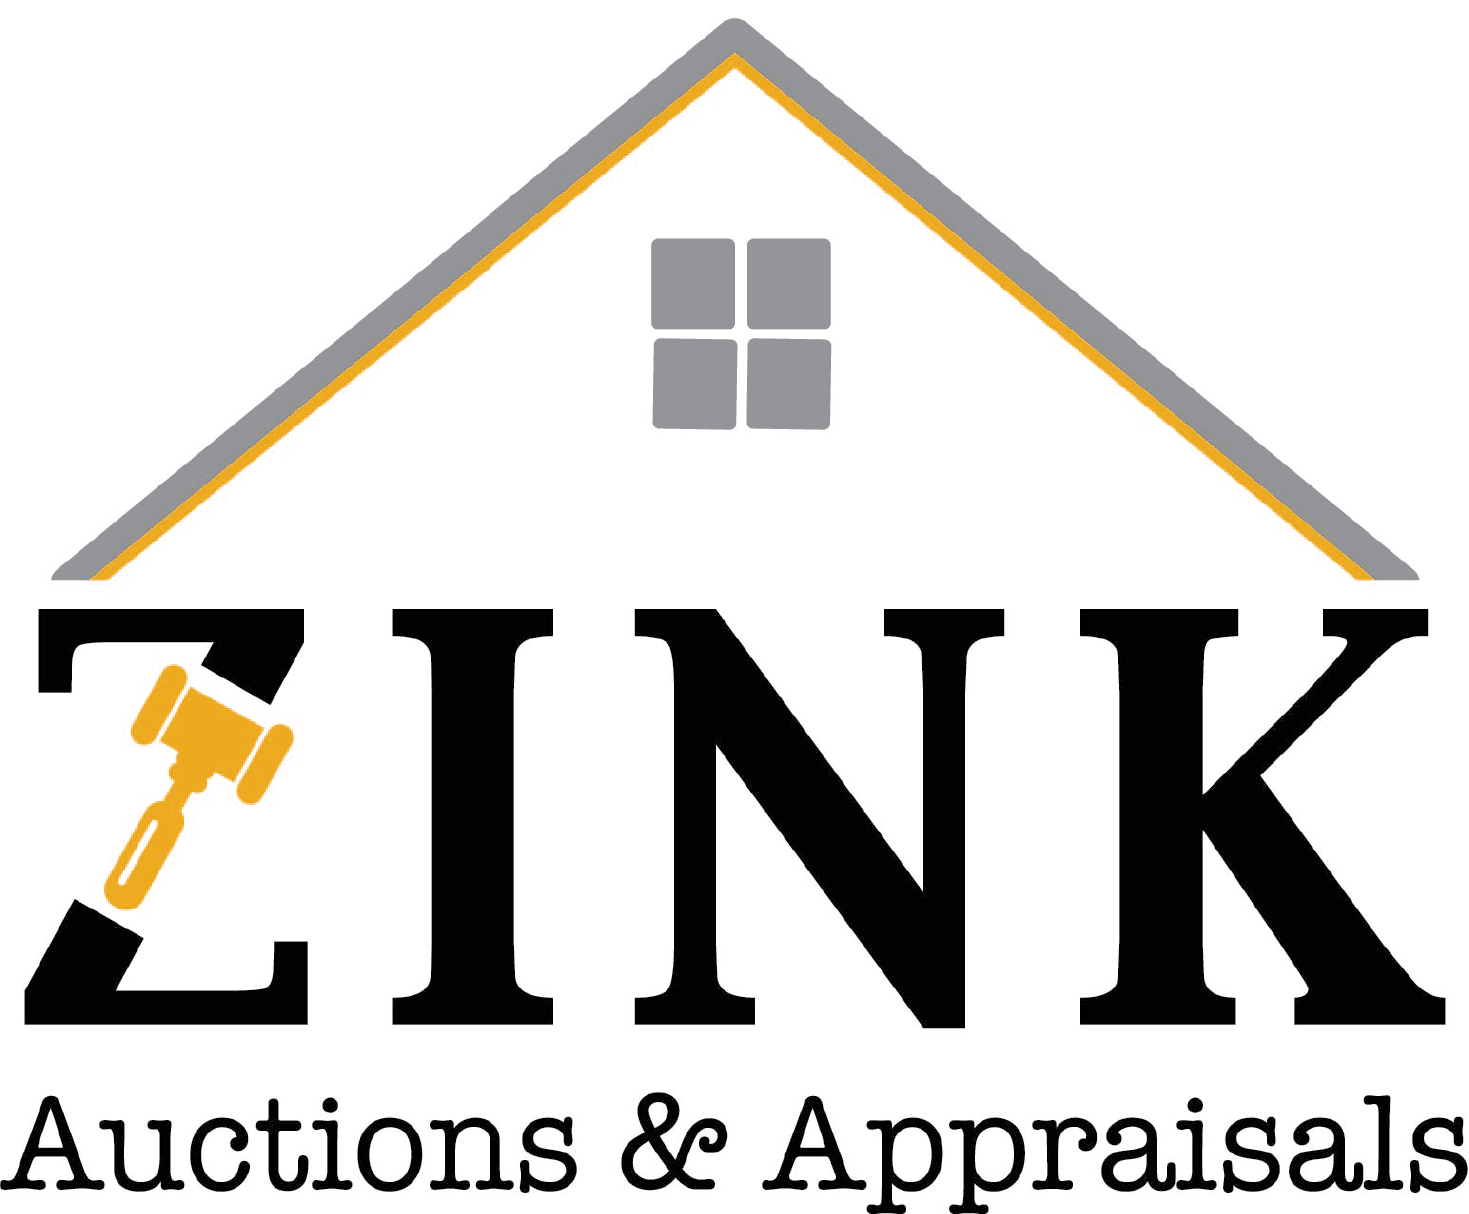 Zink Auctions and Appraisals Logo